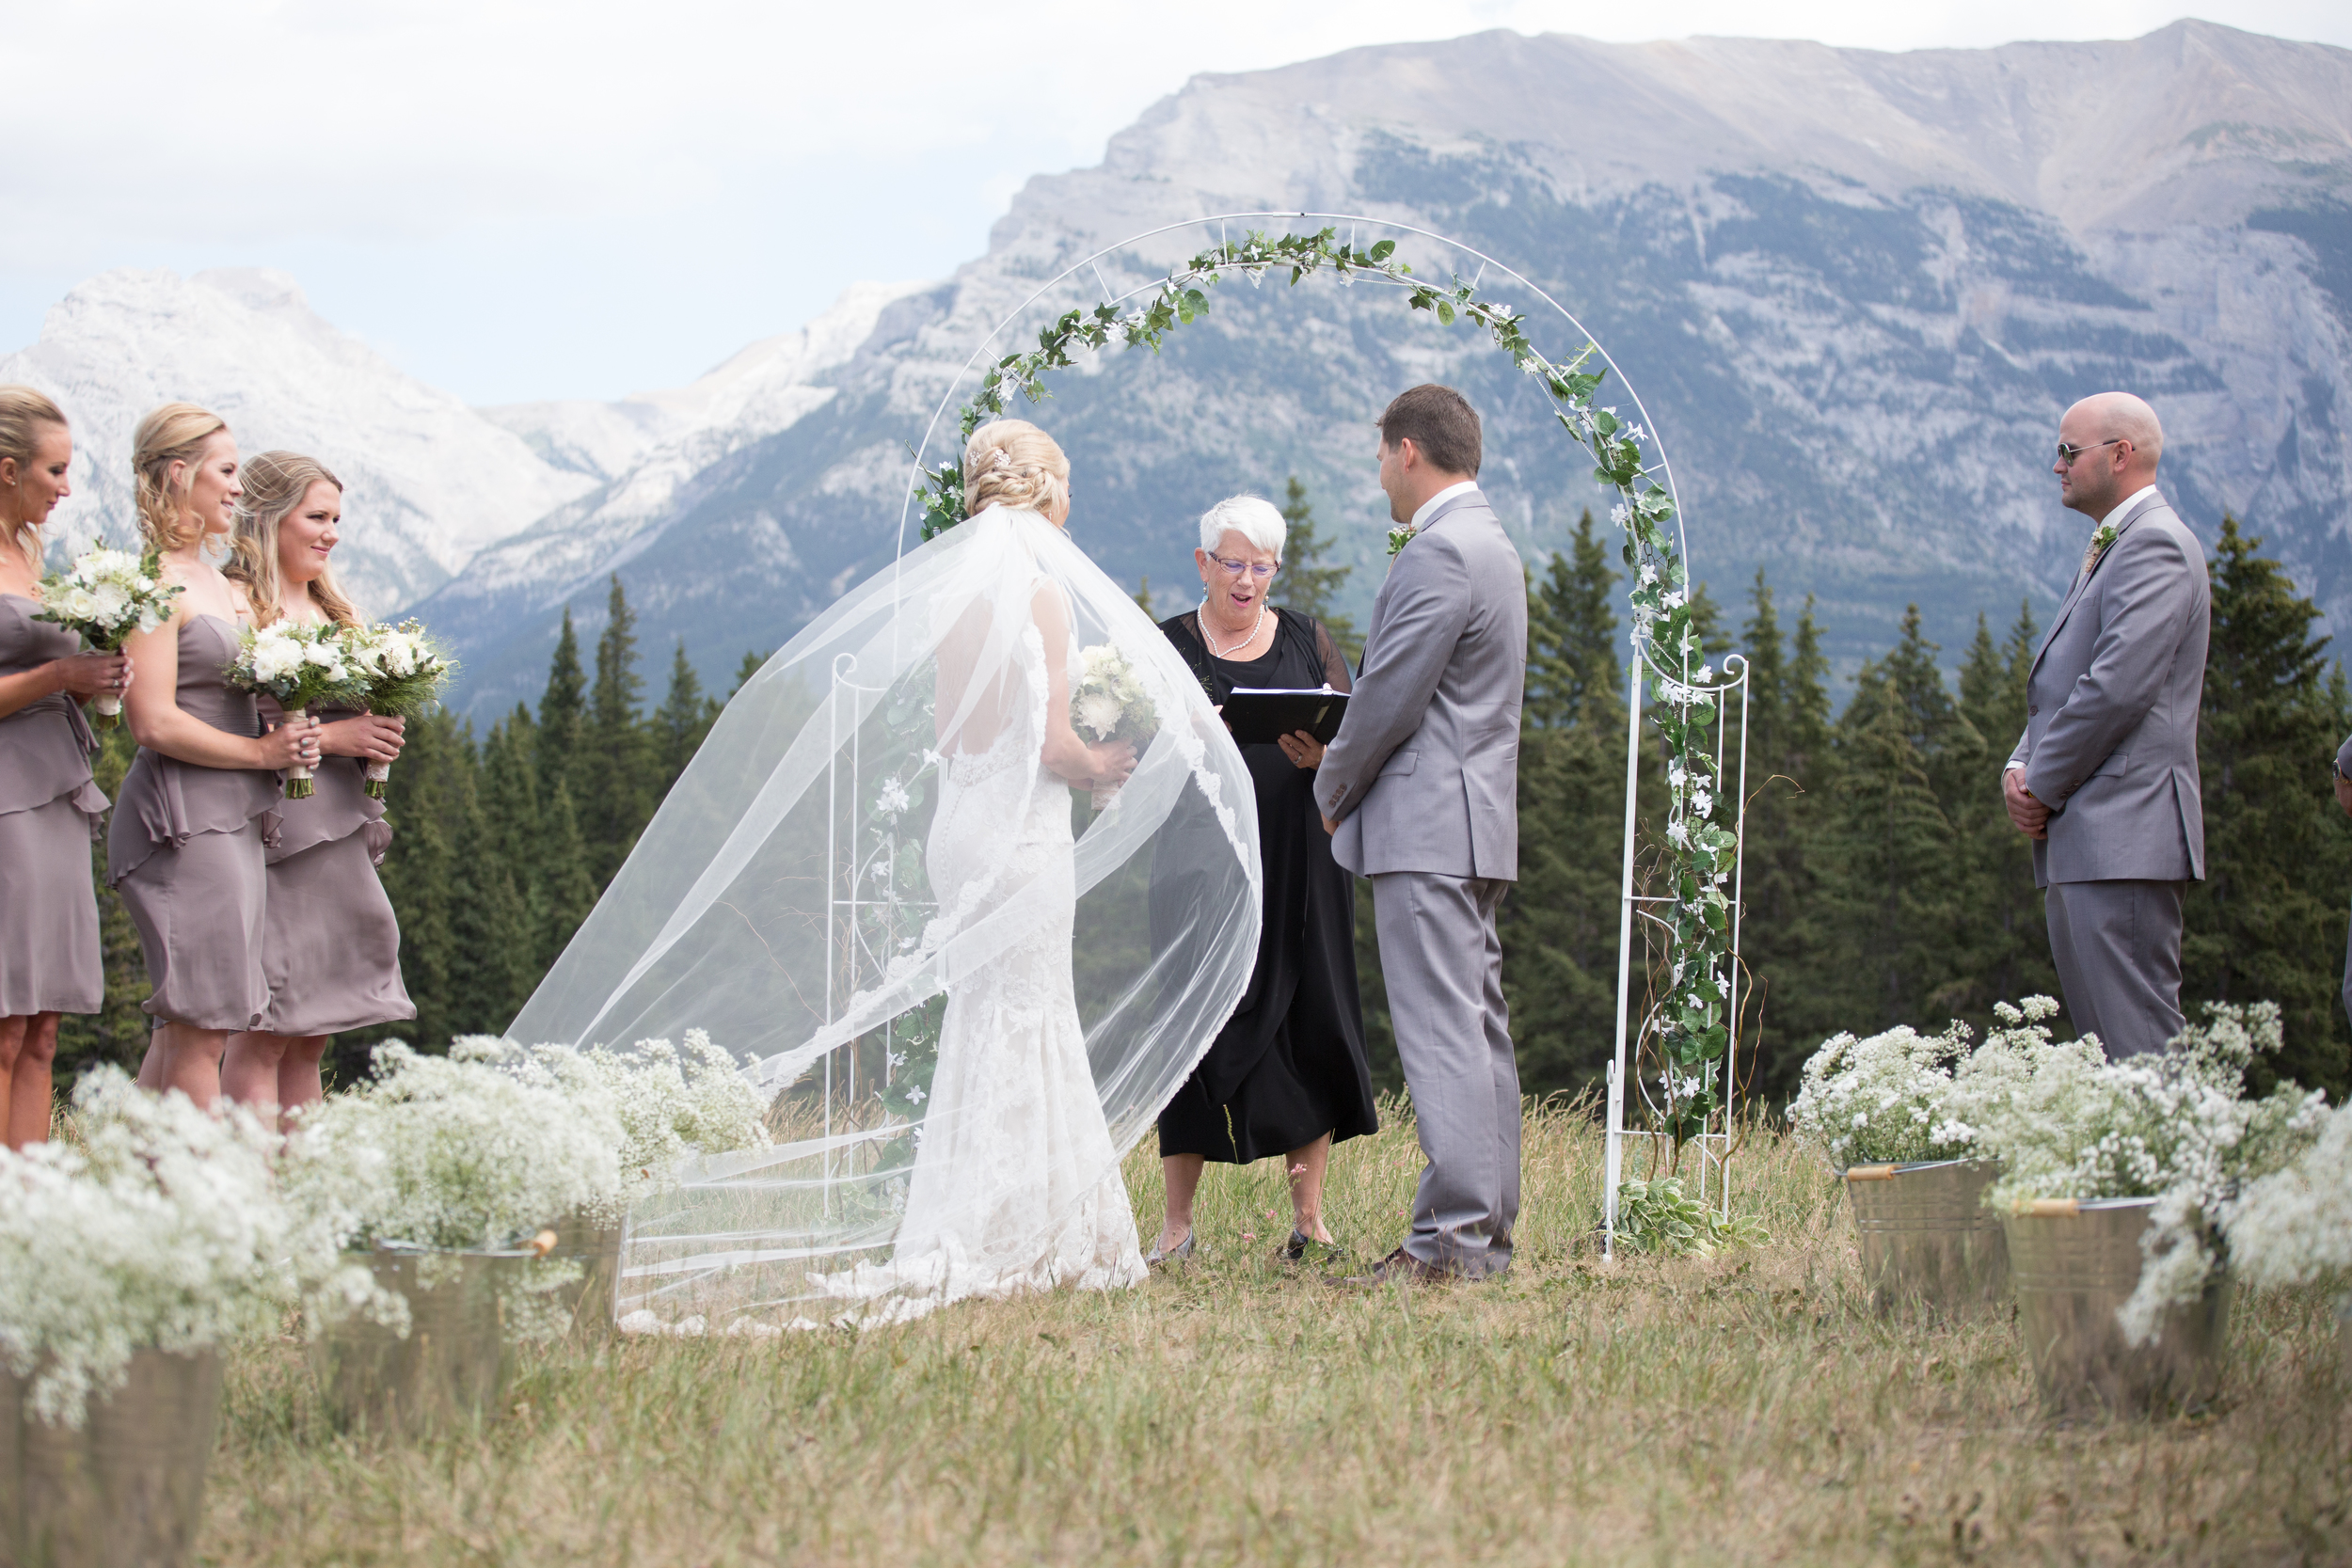 Beautiful outdoor wedding ceremony among the Rocky Mountains in Quarry Park, Canmore, Alberta